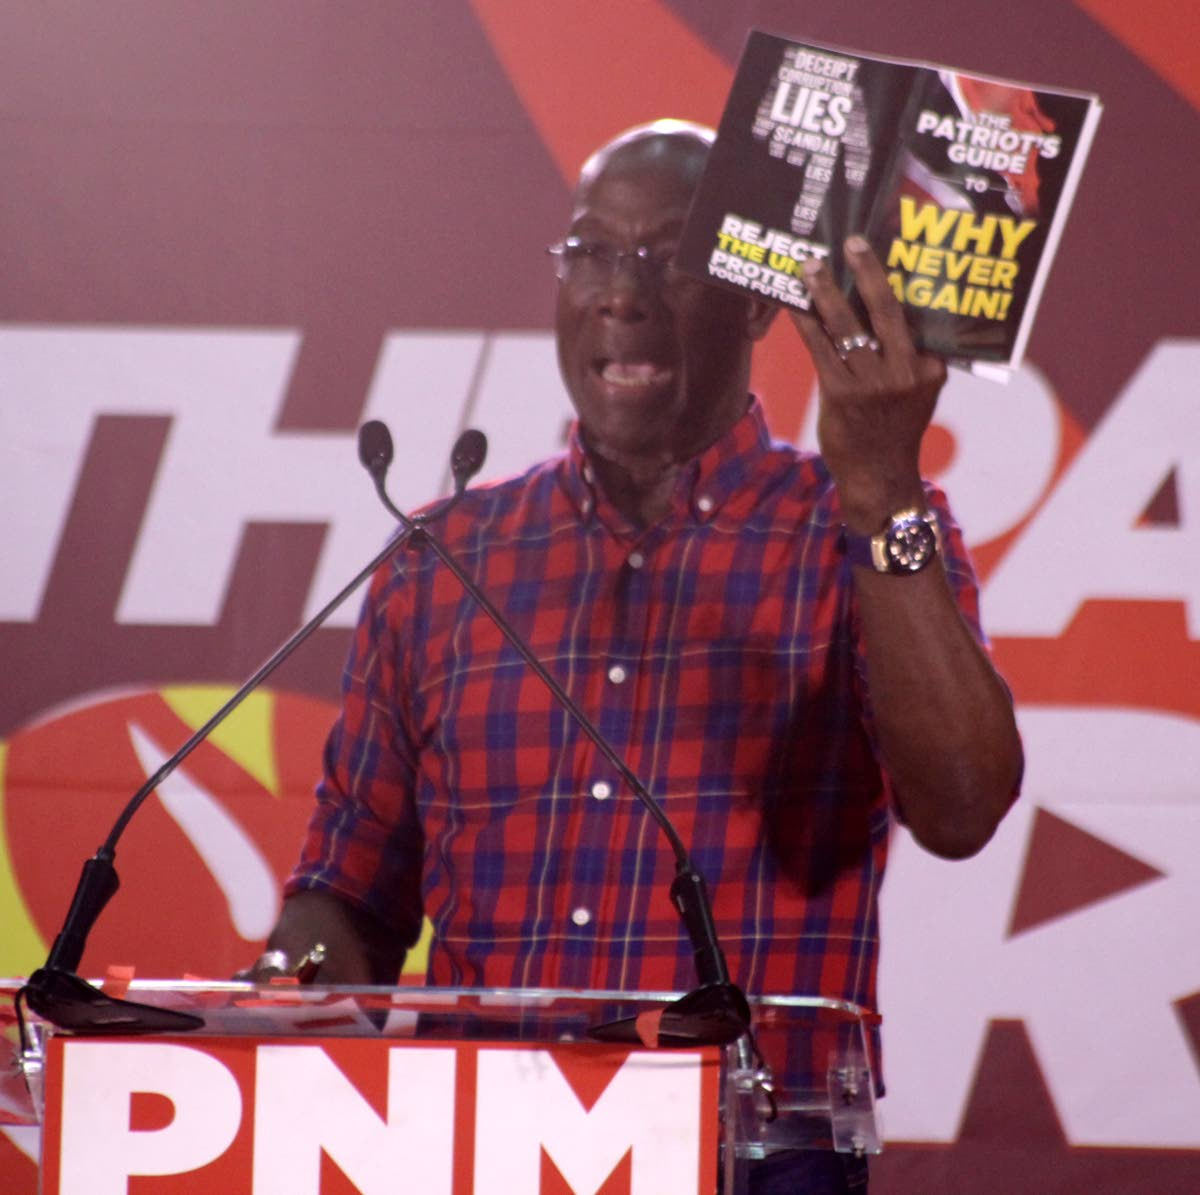 "NEVER AGAIN:  PM Dr Keith Rowley with PNM publication, ""Why Never Again"" at St Francois Valley Girl's College, Belmont, Thursday night. PHOTO BY ROGER JACOB"